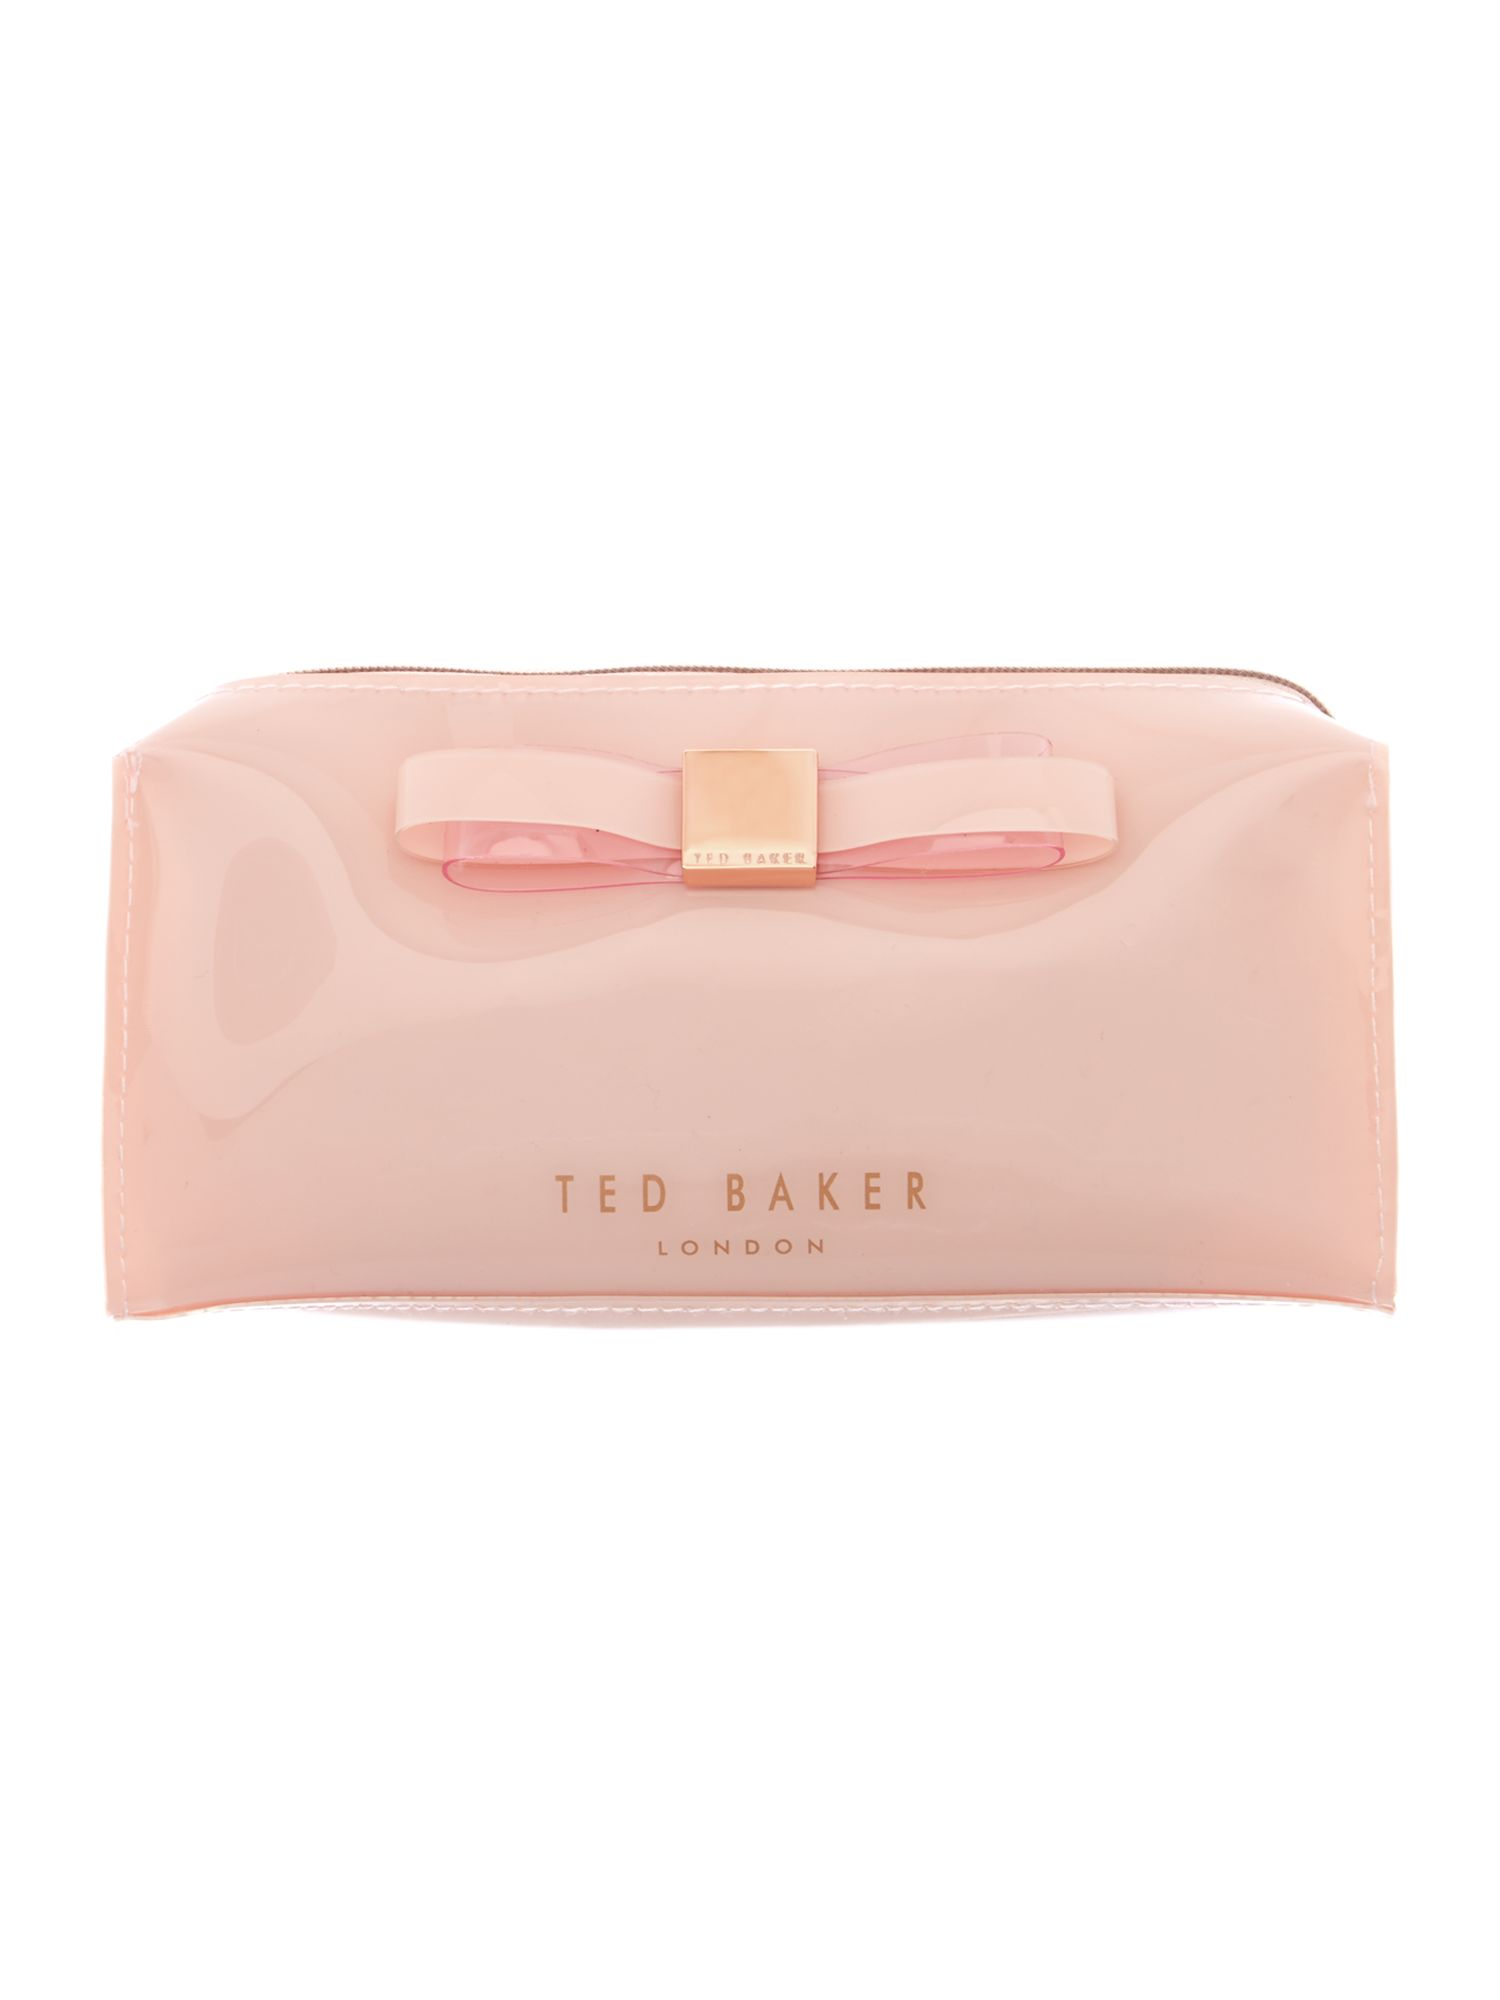 Medium pink cosmetic case